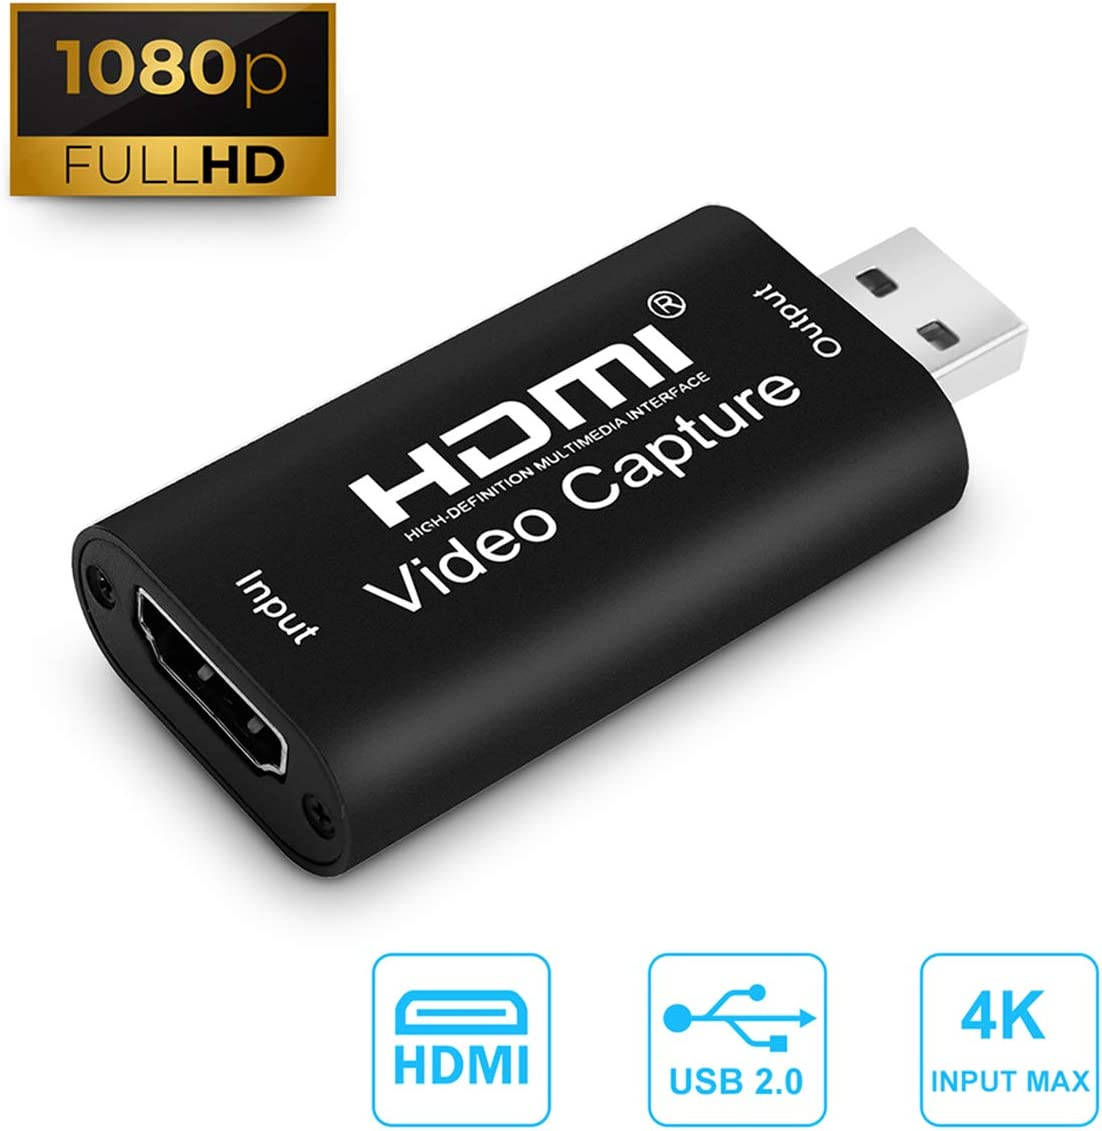 Ench HDMI Capture Card USB 2.0 Audio Video Capture Converter,1080P high-Definition Acquisition, widely Used in DIY Video Such as Game Live,Web Live,Teaching Live